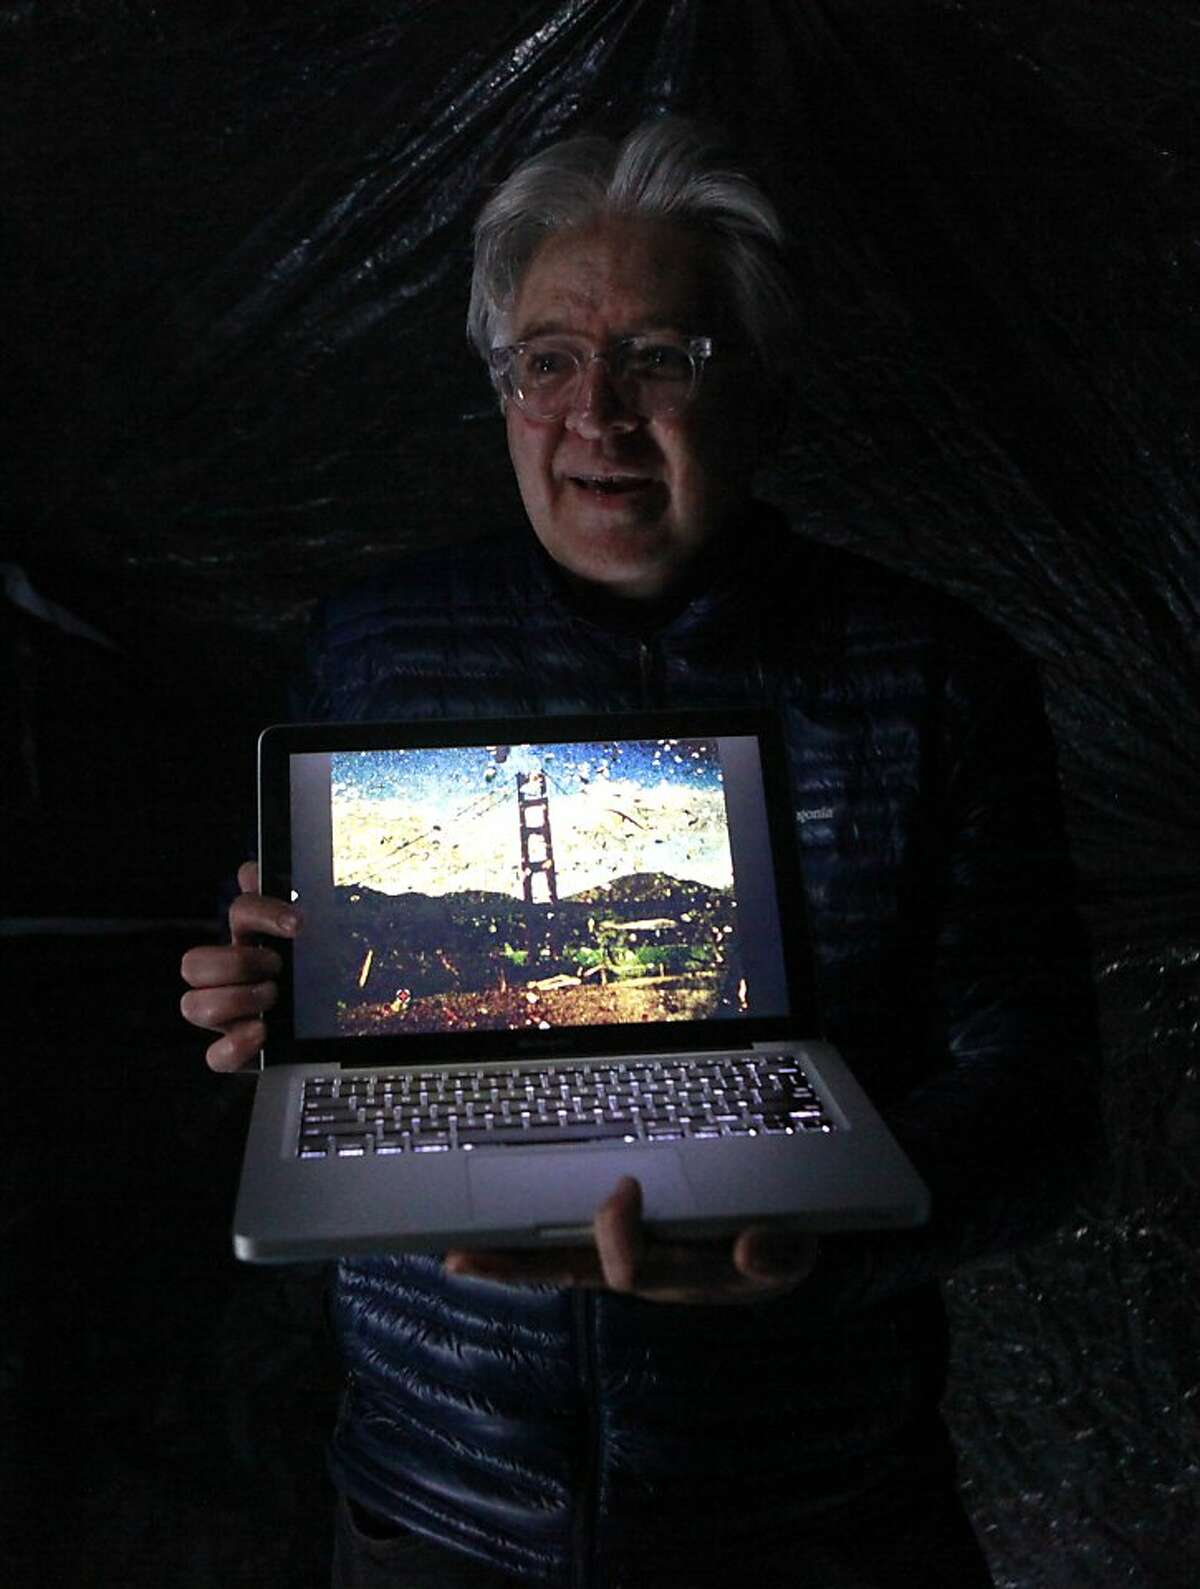 Abelardo Morell, shows what one of his final images looks like on his computer. Abelardo came out from Boston to demonstrate his portable camera obscura in a tent, which he will later set up inside the brick barracks during the International Orange exhibition that will take over Fort Point National Historic Site as part of the 75th anniversary celebration of the Golden Gate Bridge. This demonstration took place in San Francisco, California on Friday, April 13, 2012.